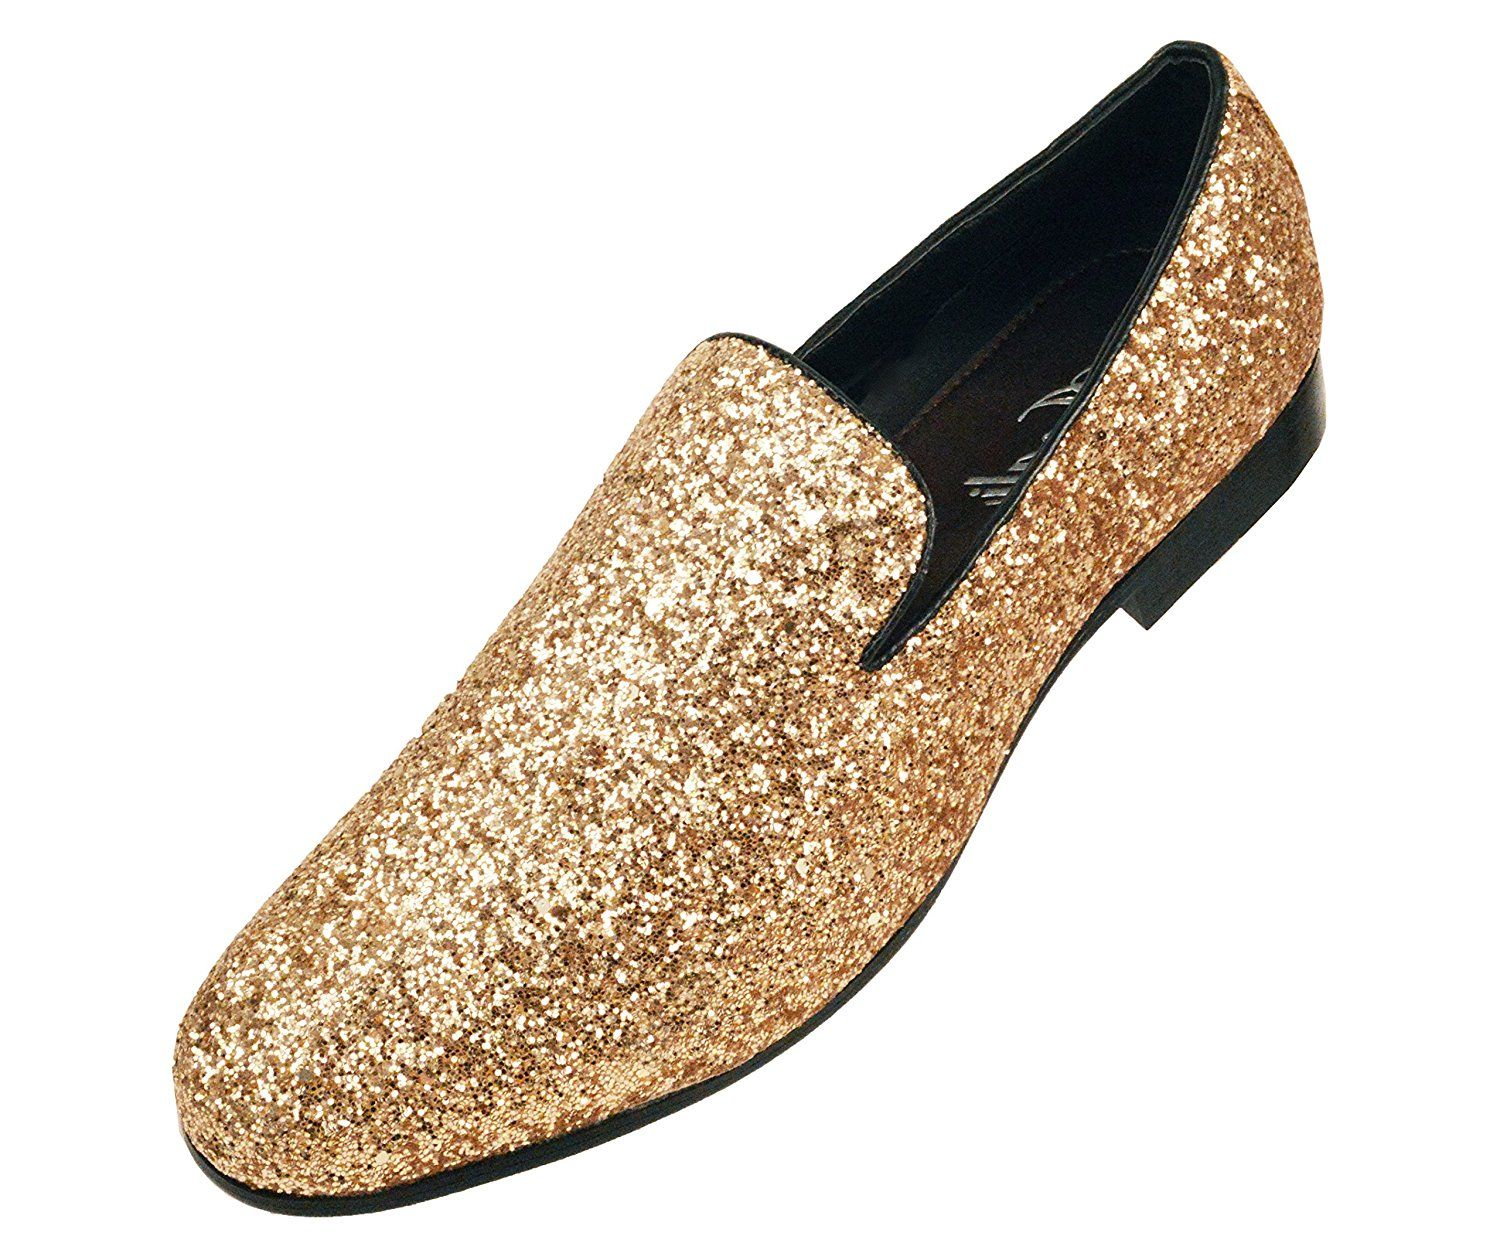 Men's Metallic Glitter Sequins Loafers Dress Shoes Tuxedo Slip on Smoking Slippers Gold/Silver